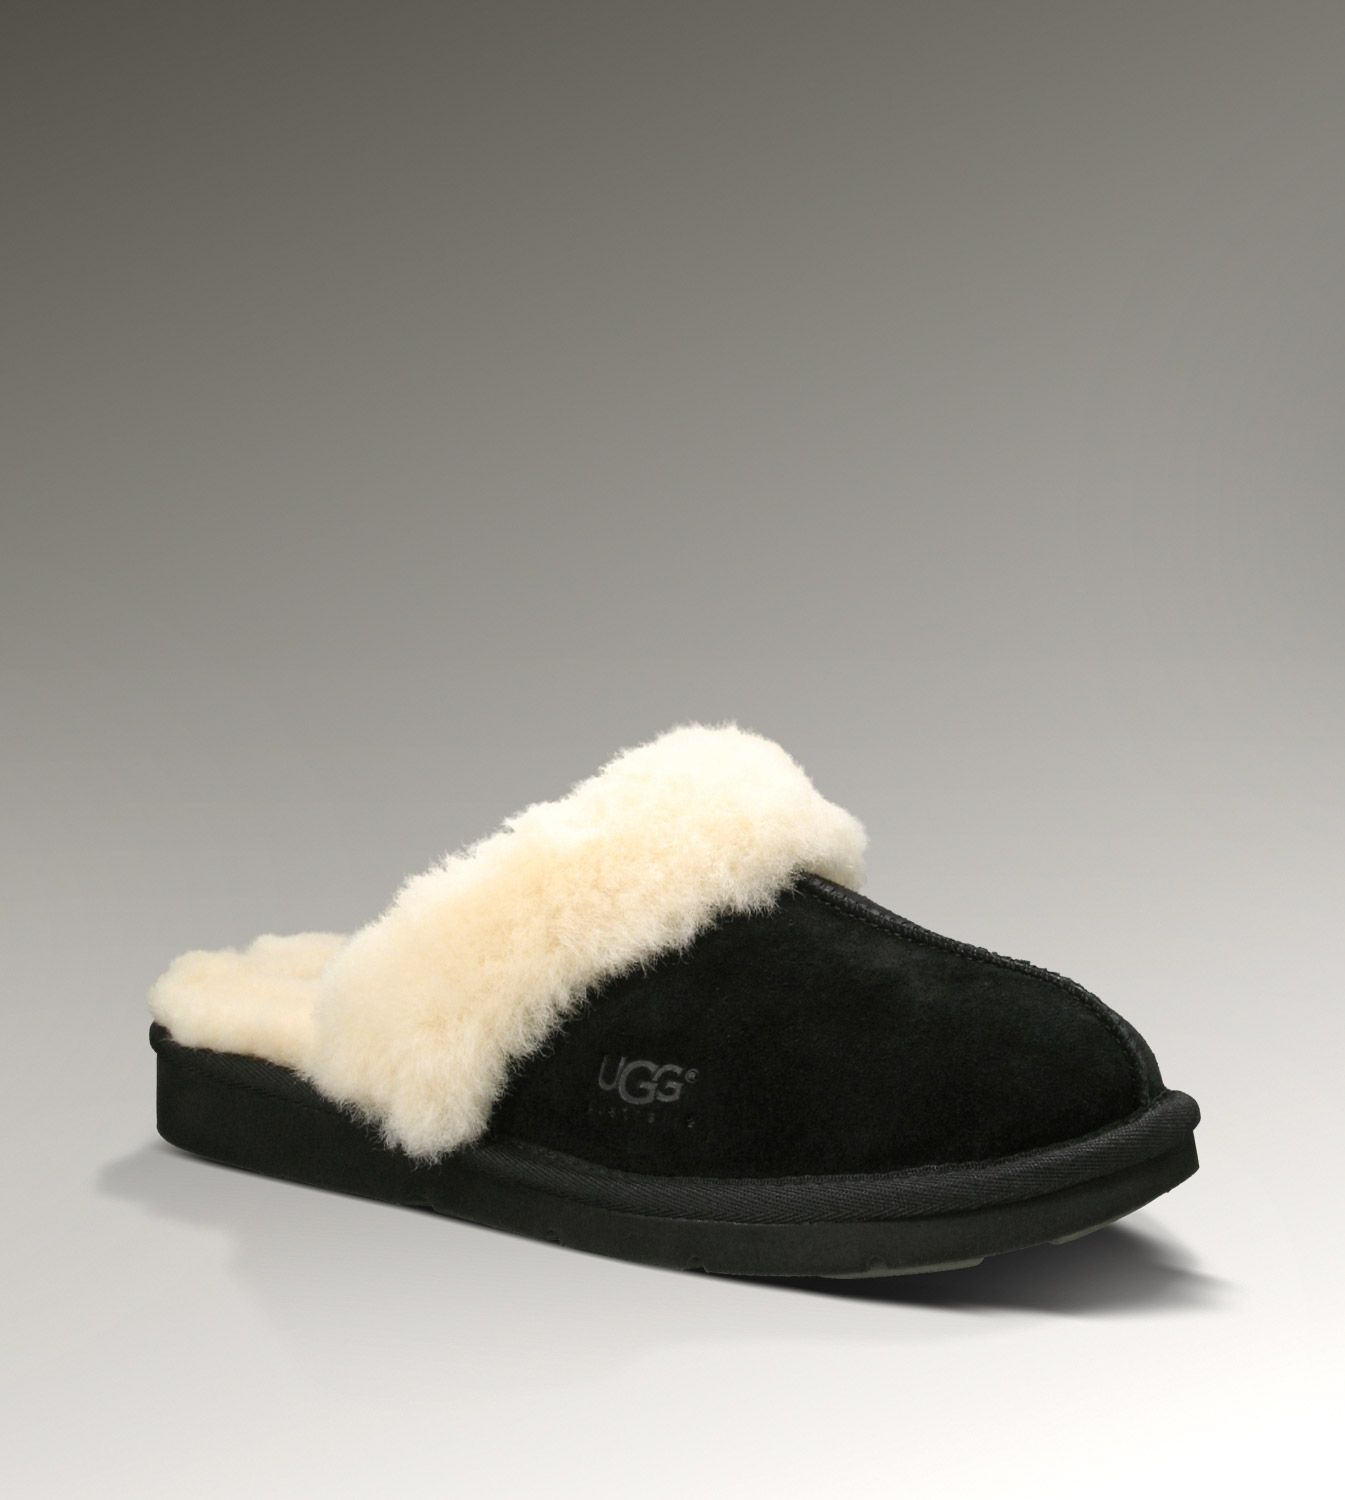 a6162df8b8a My feet want these slippers!! Nothing like an Ugg! Women Cozy II ...